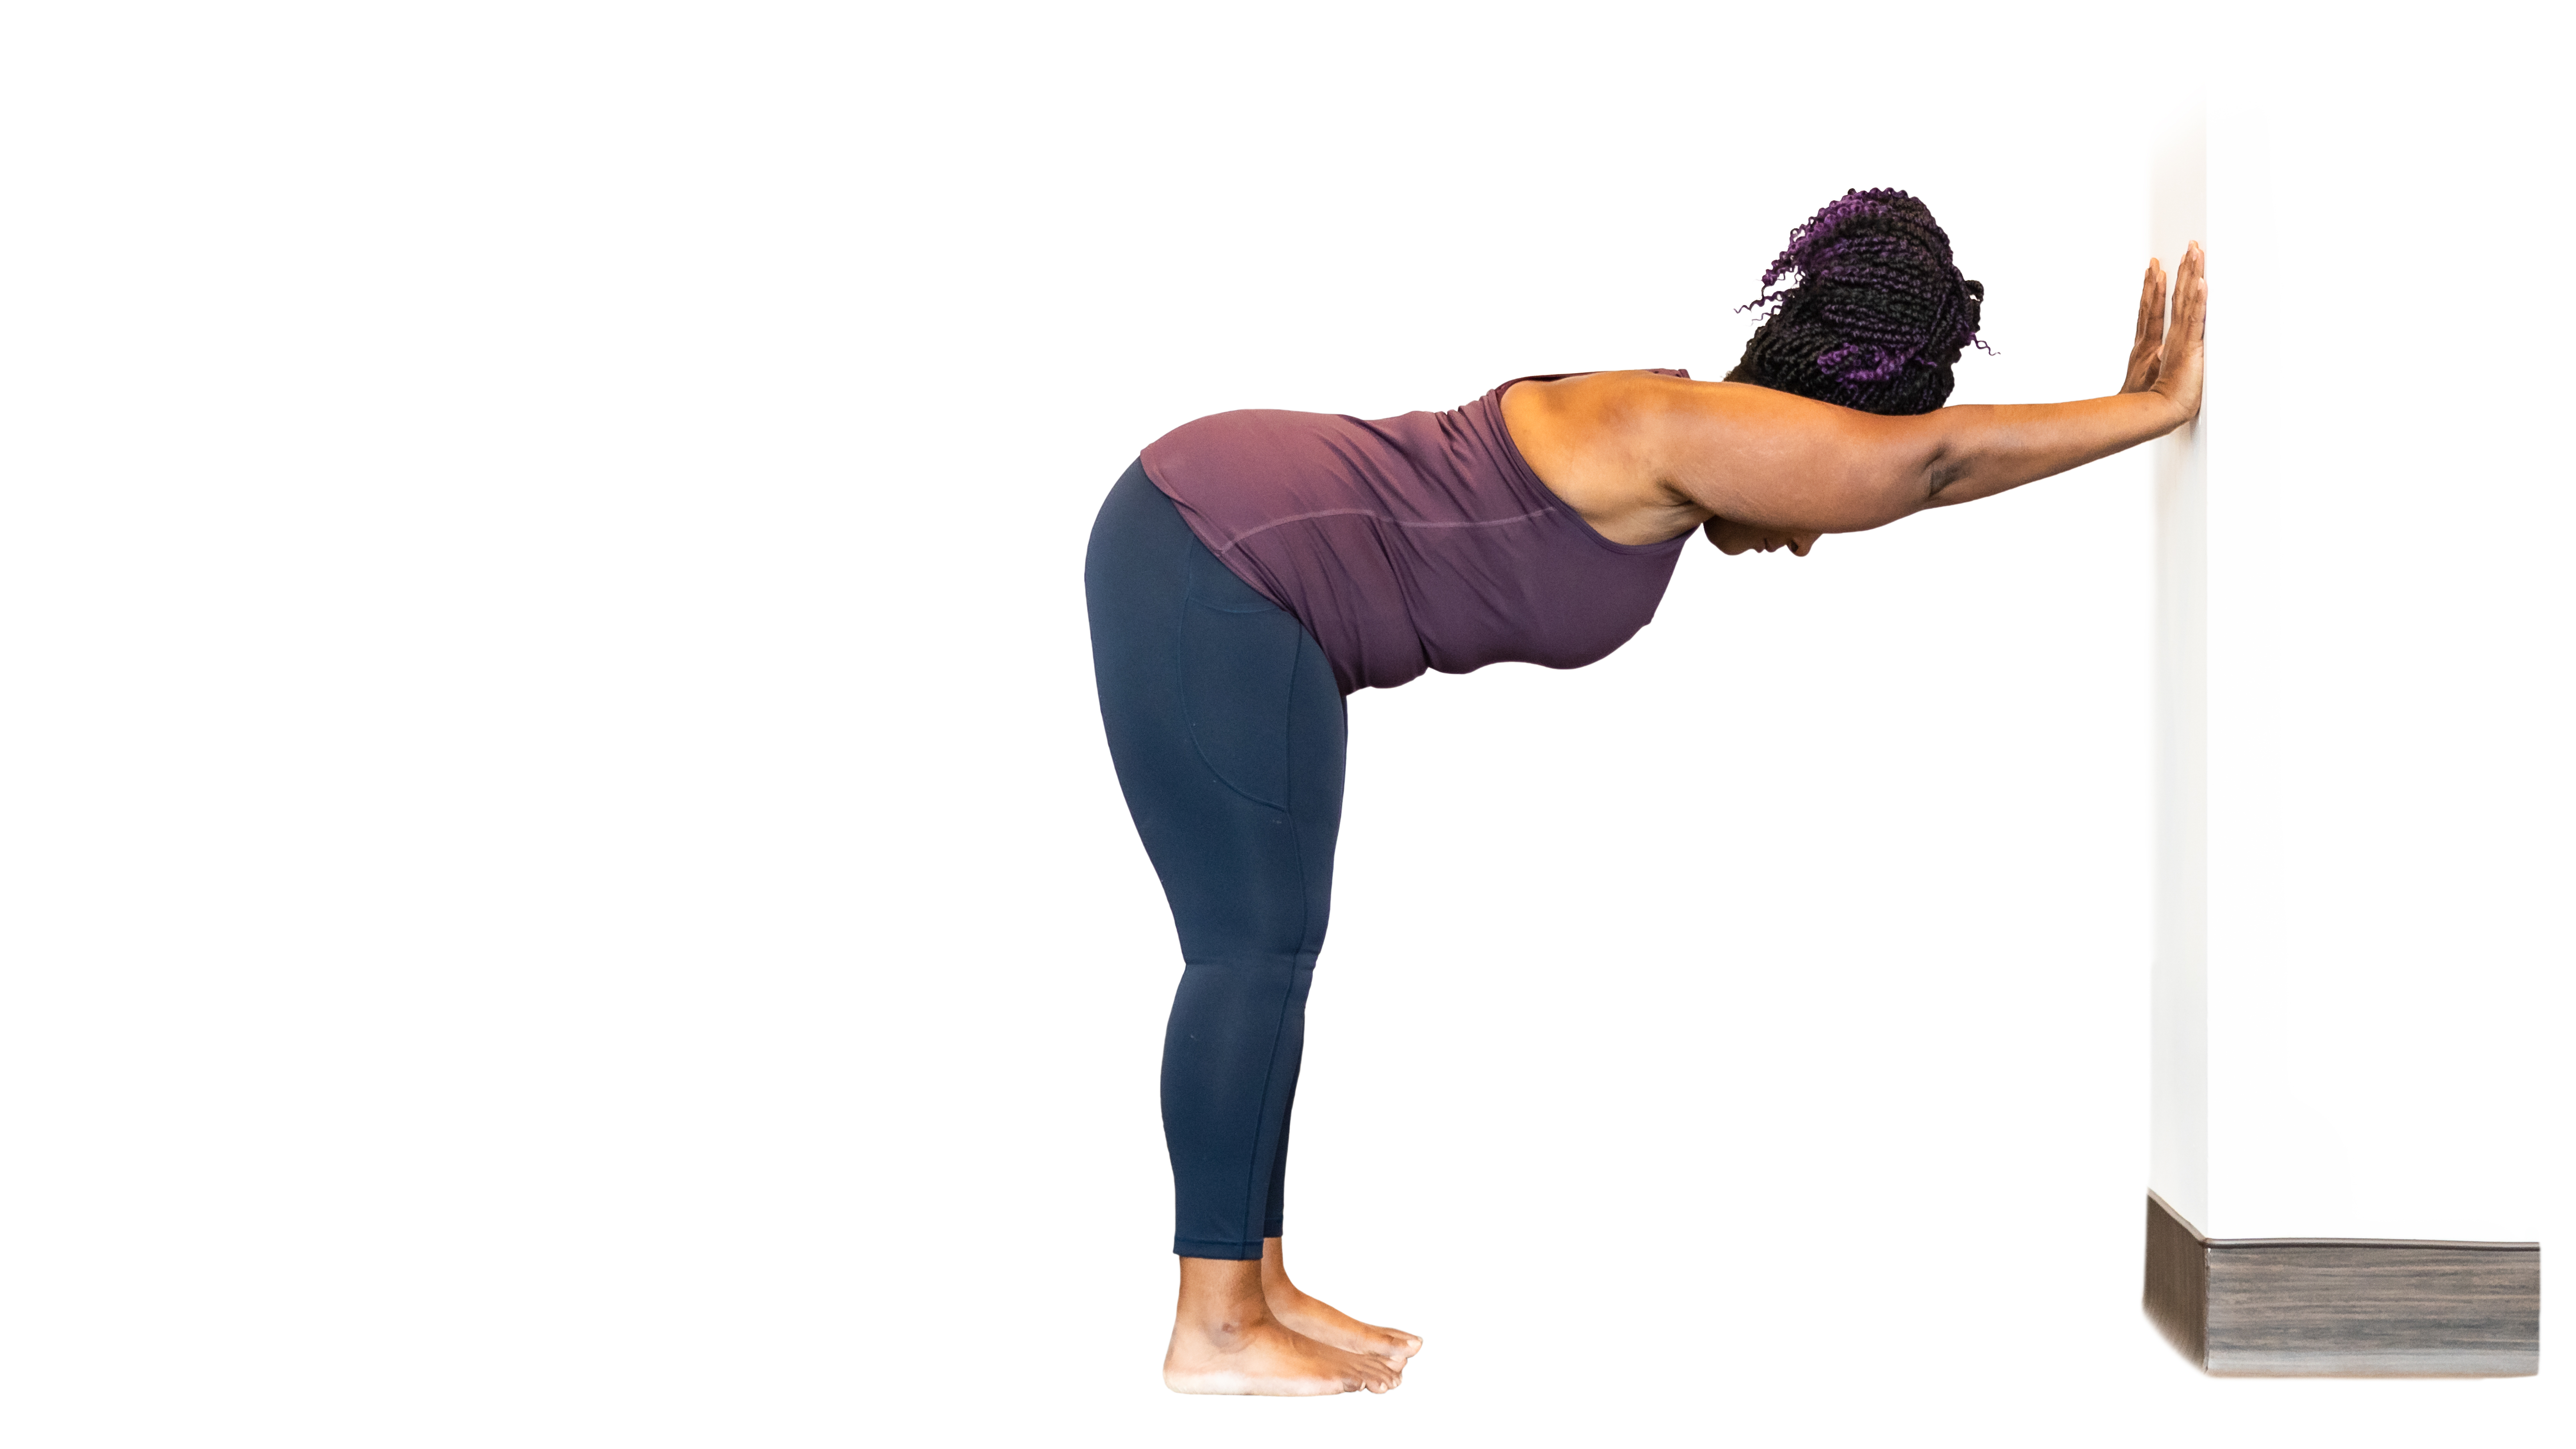 beginner yoga student practicing tips for modifying downward facing dog pose in yoga